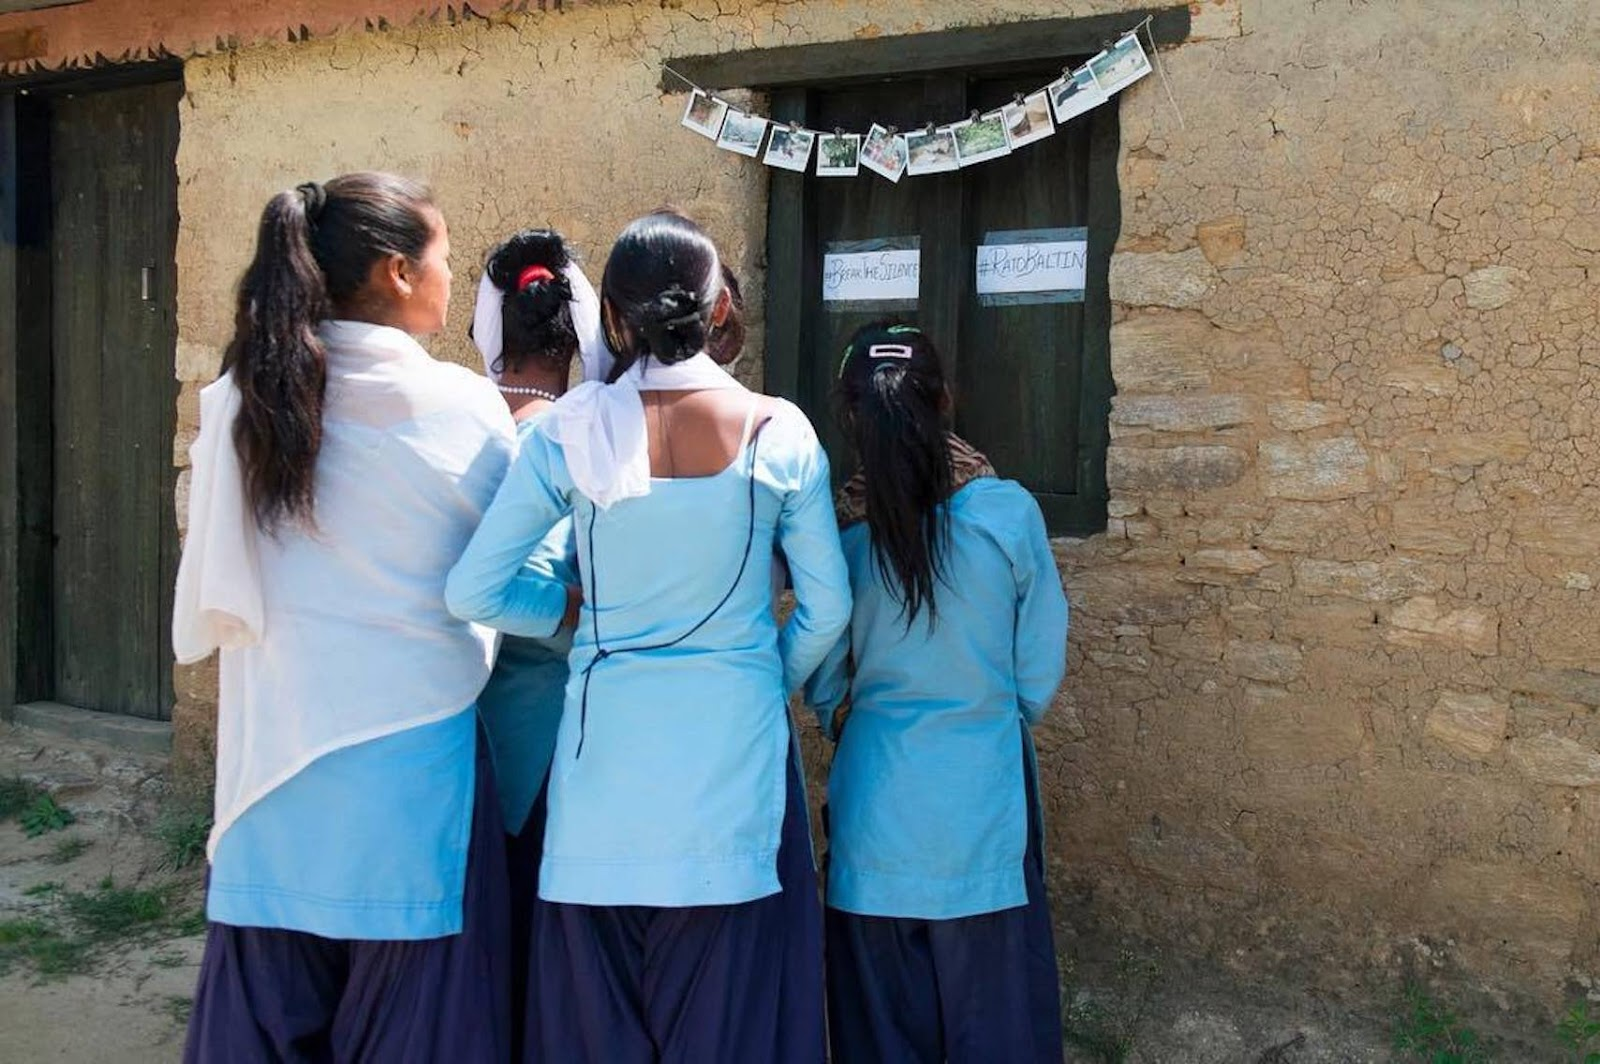 Ending Chhaupadi – How this NGO is successfully breaking harmful menstrual taboos in West Nepal